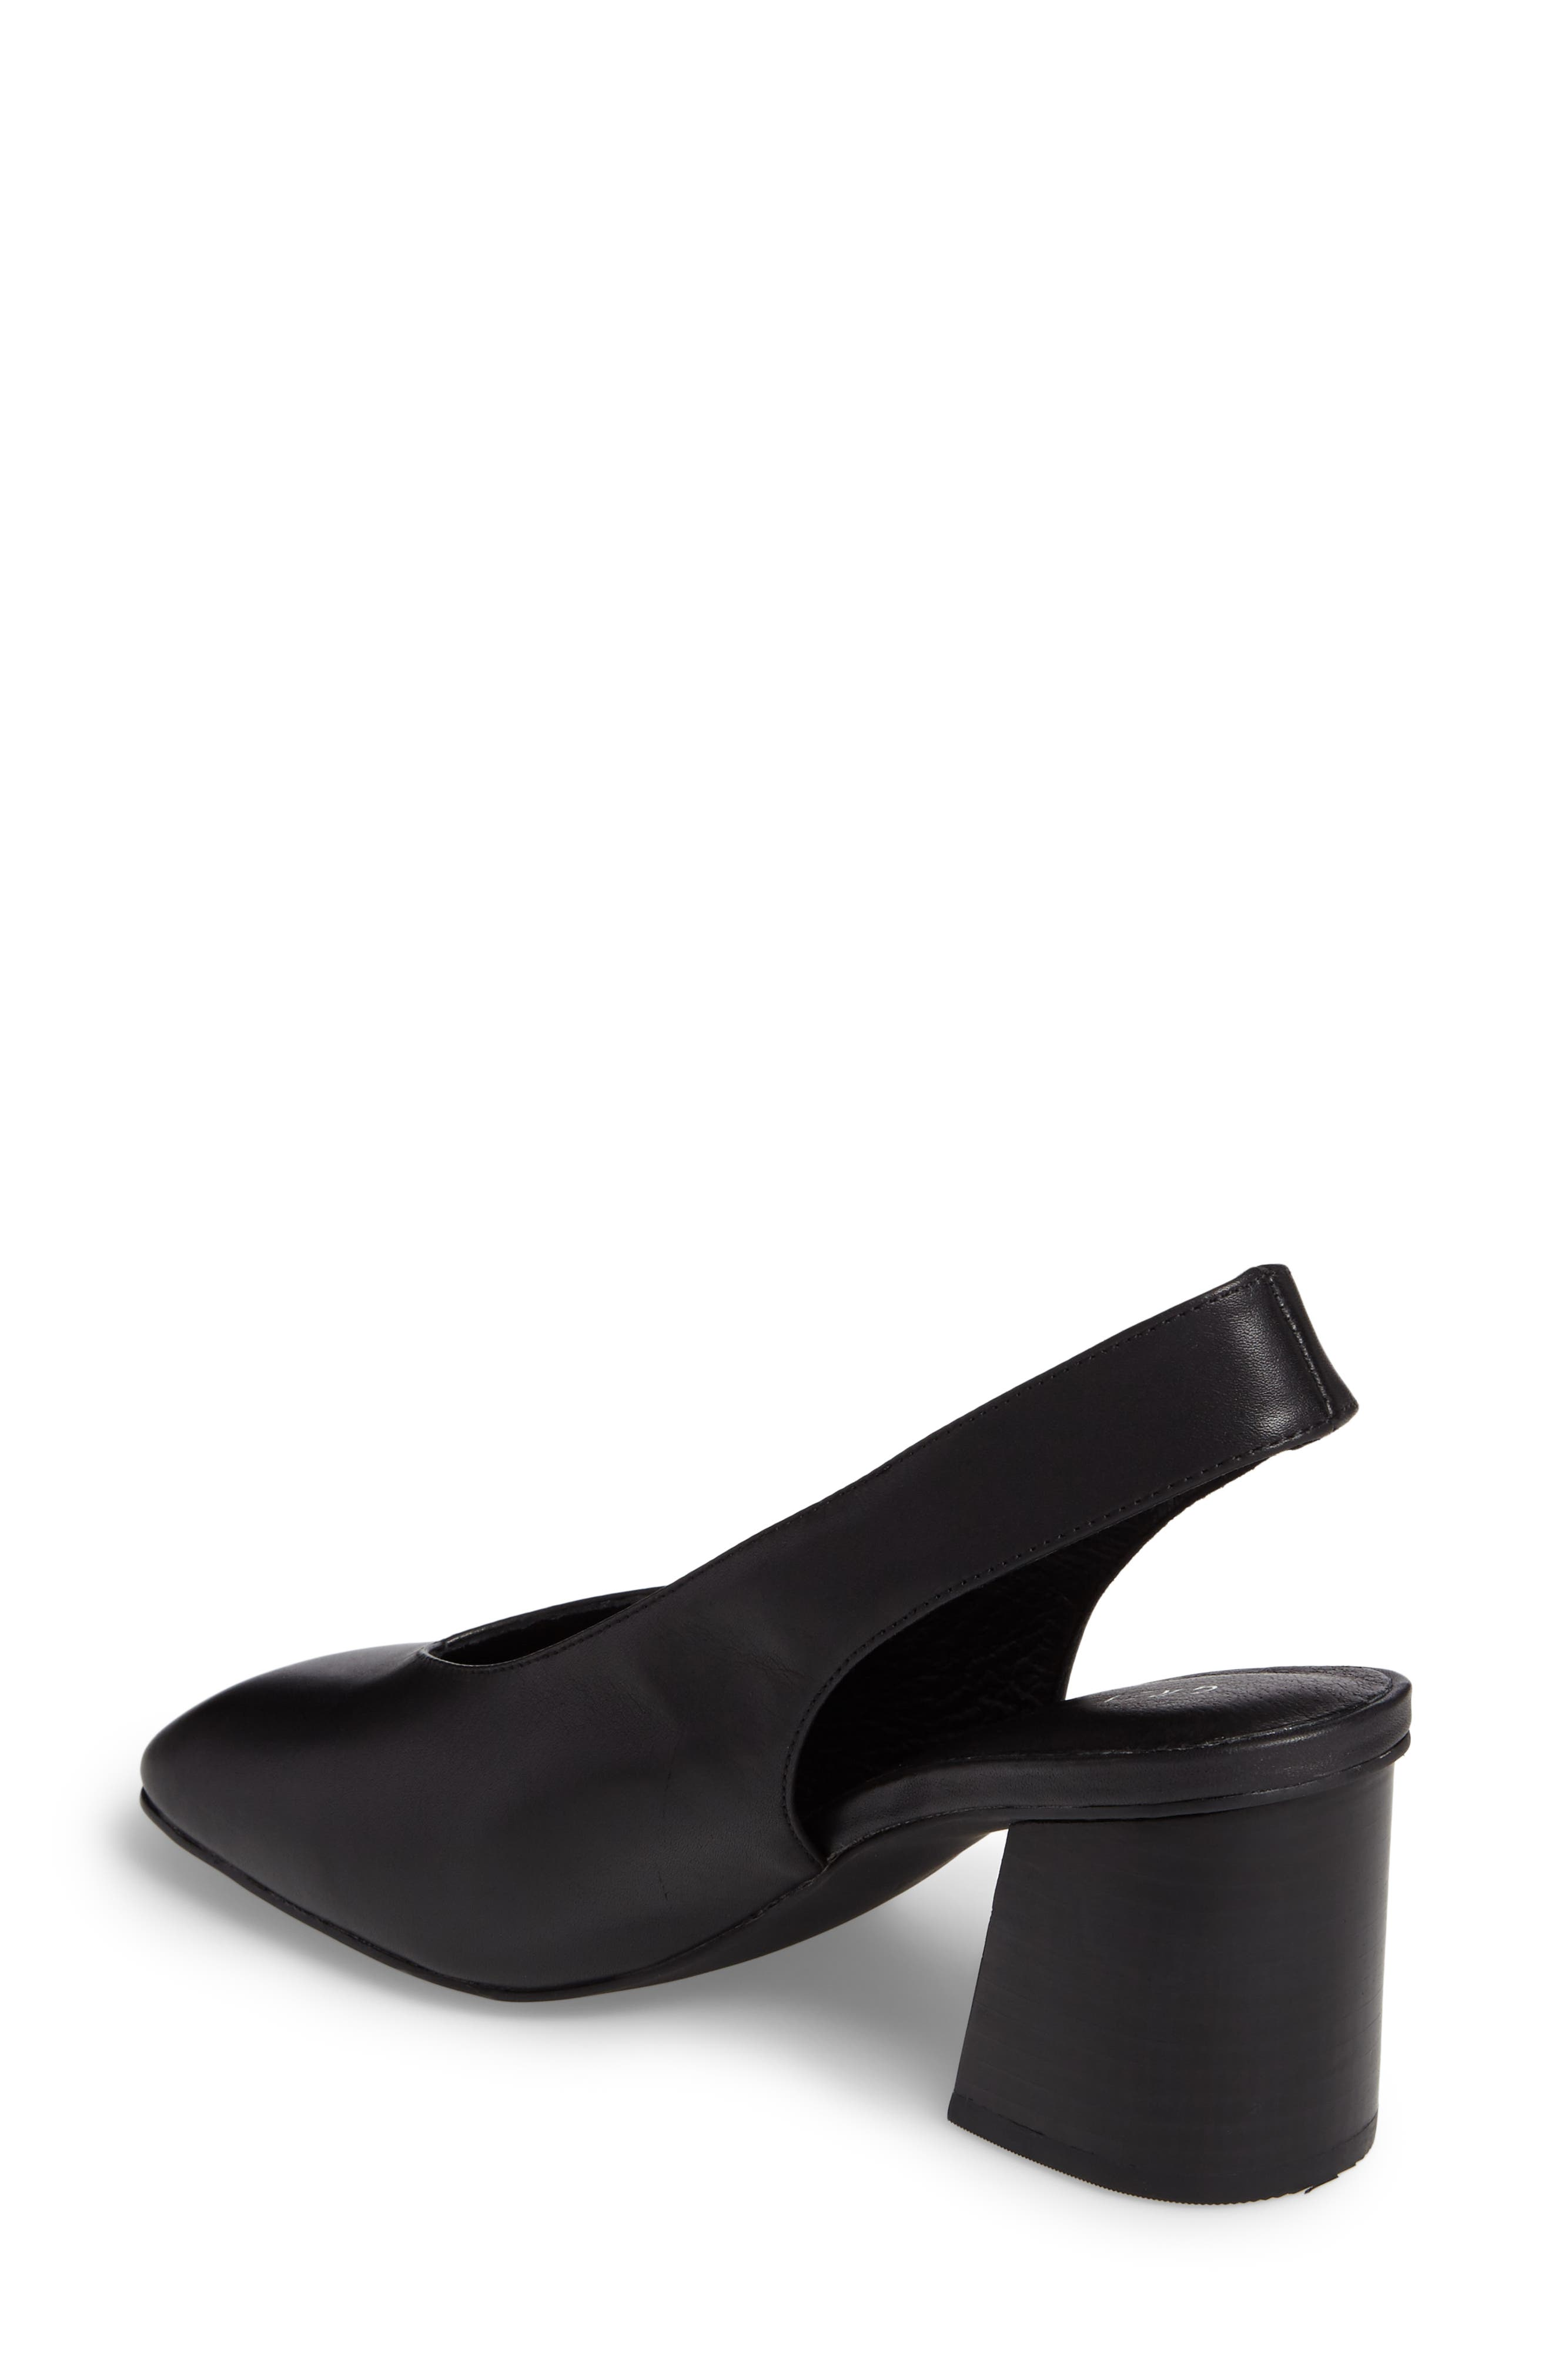 Sydney Square-Toe Slingback Pump,                             Alternate thumbnail 2, color,                             001